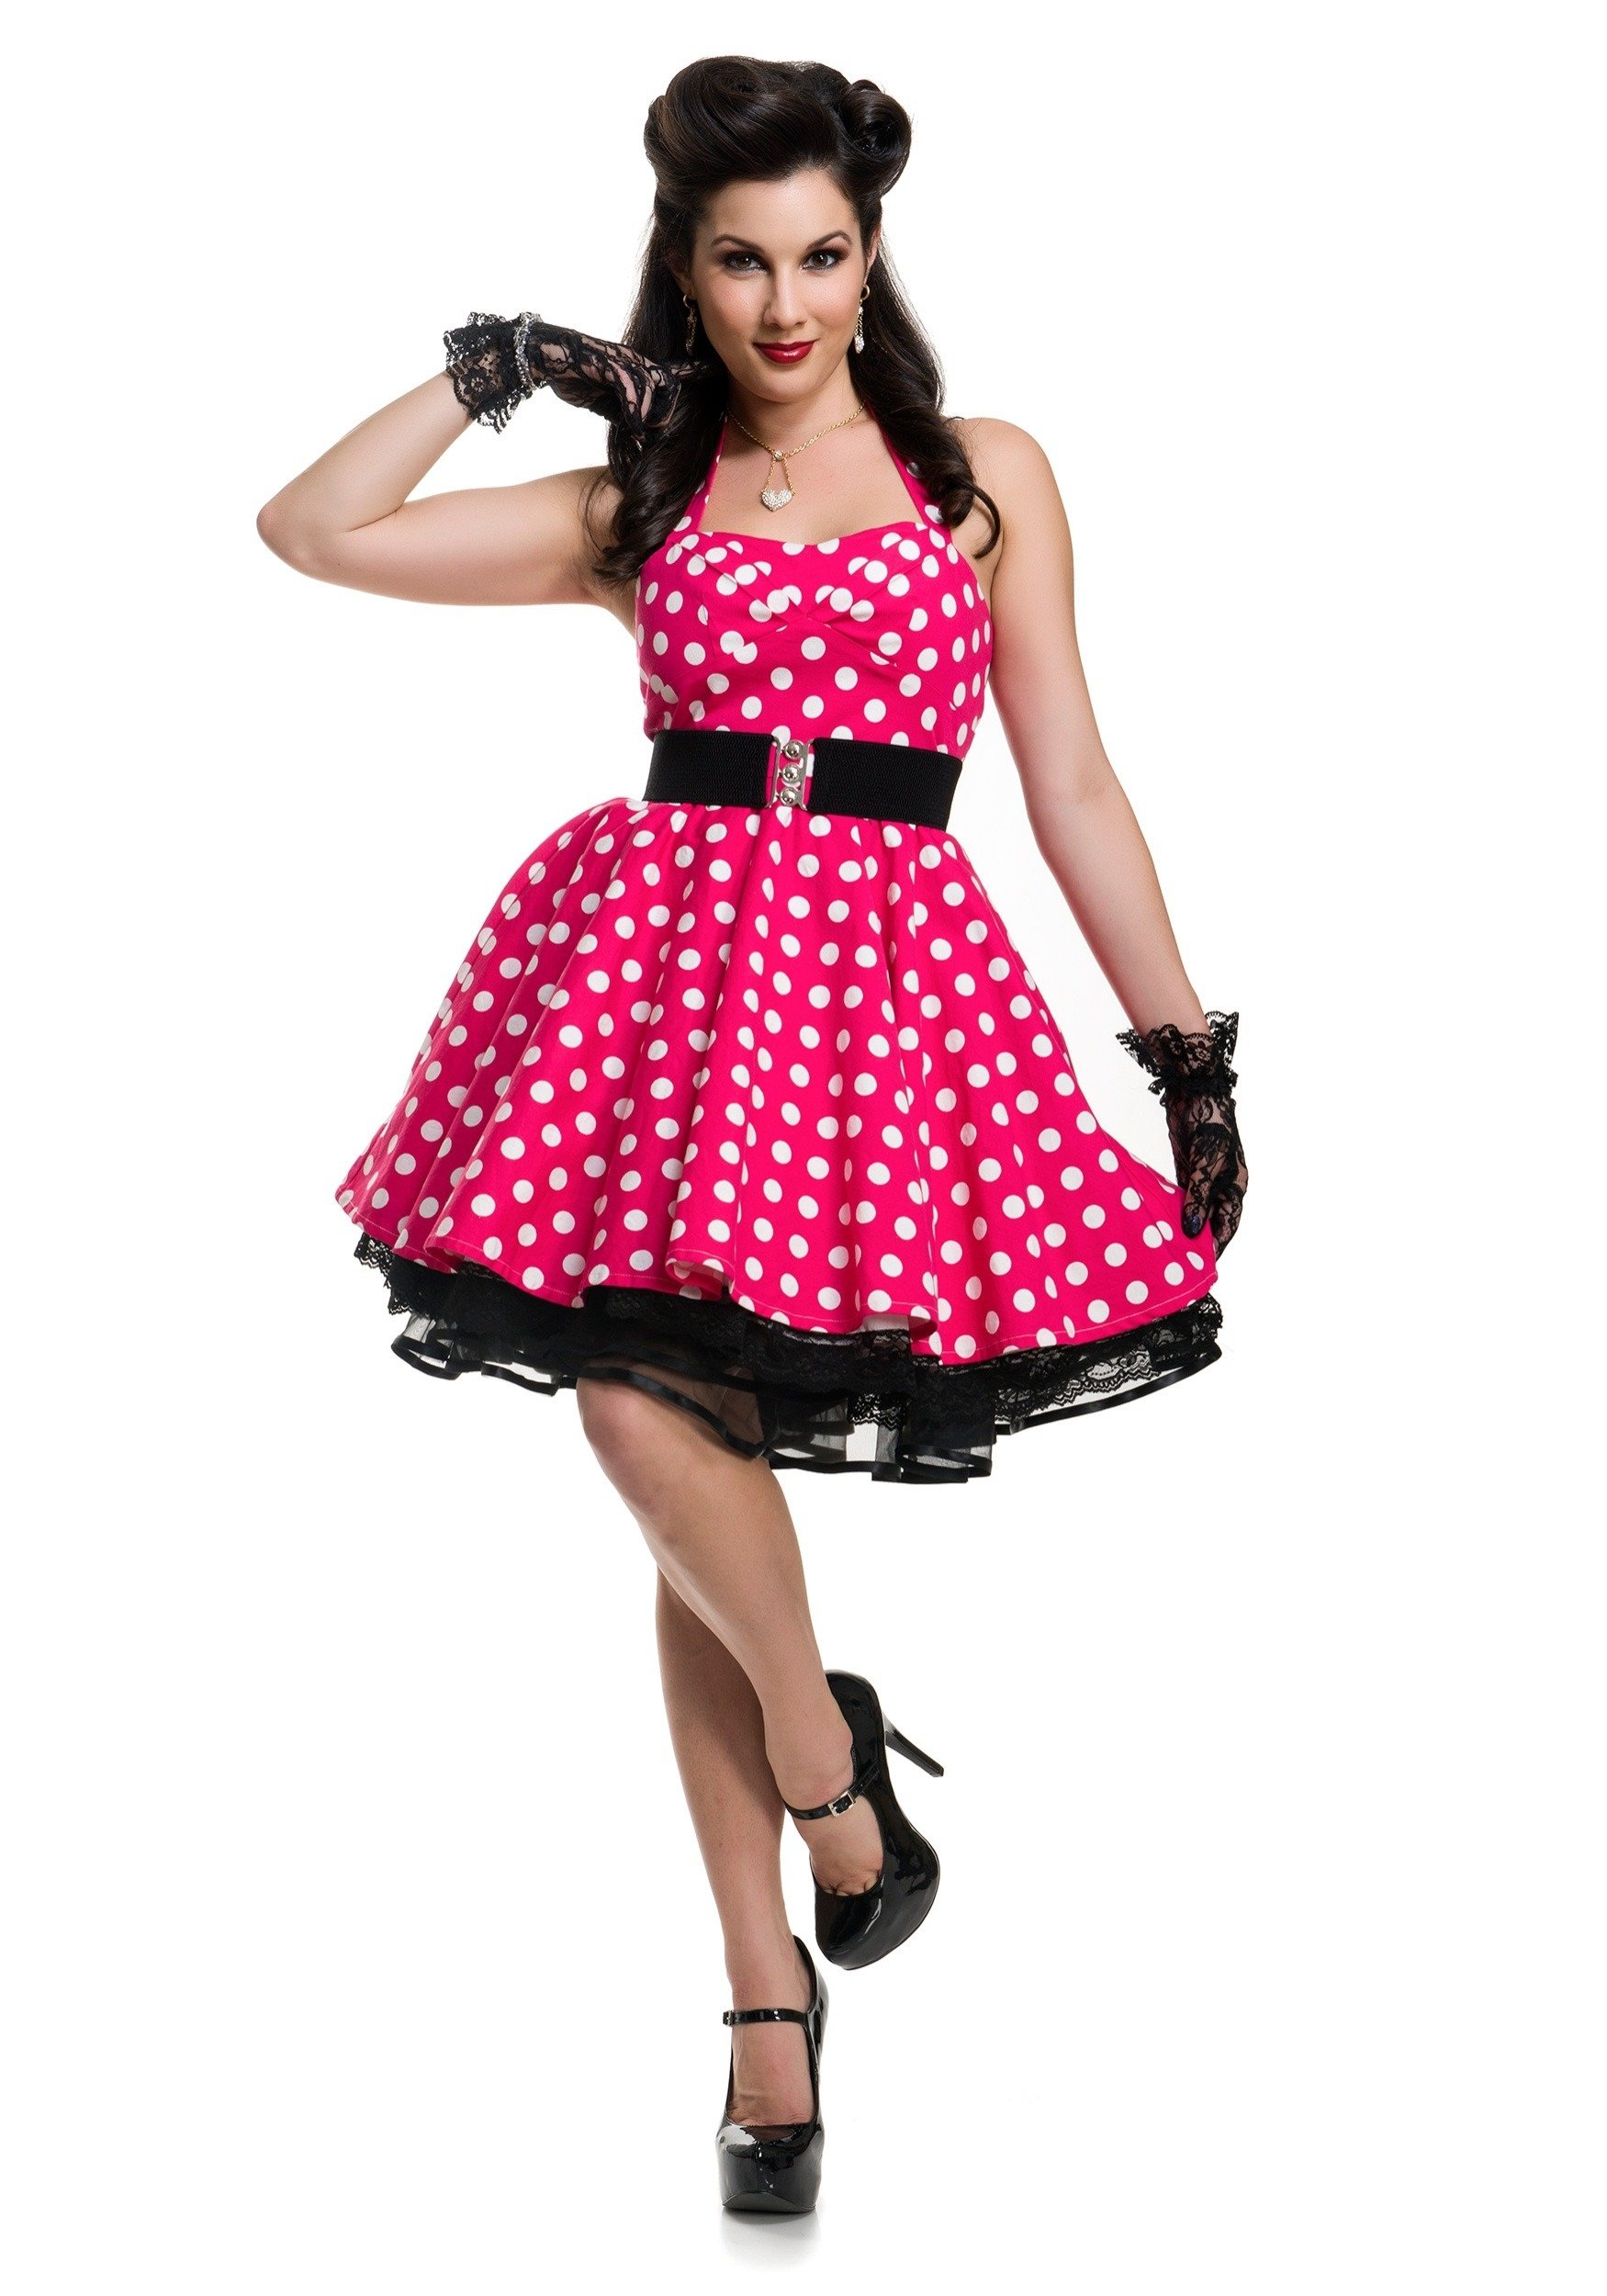 10 Famous Pin Up Girl Costumes Ideas womens pink polka dot pin up costume 2021